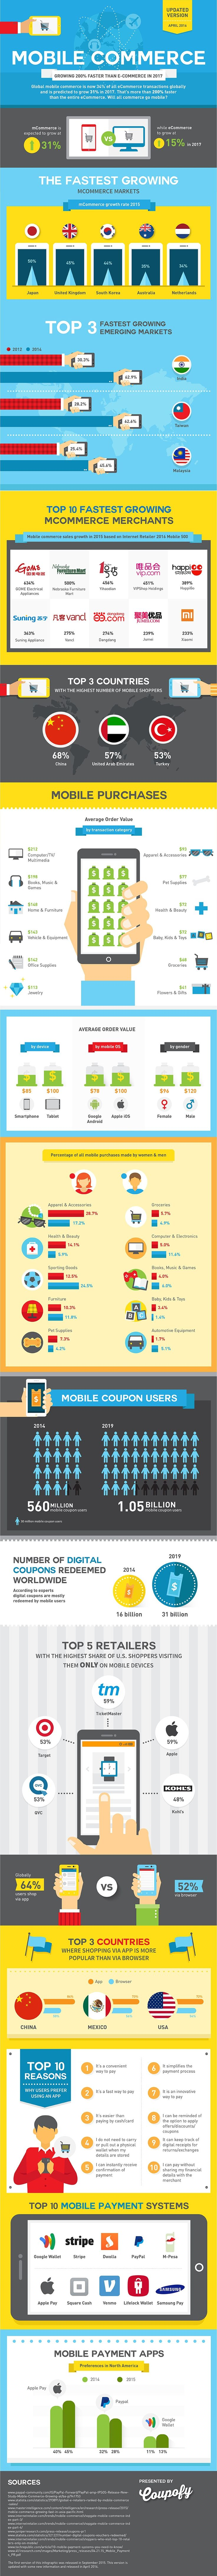 State Of Mobile Commerce - April 2016: http://blog.hubspot.com/marketing/mobile-commerce-growth-global